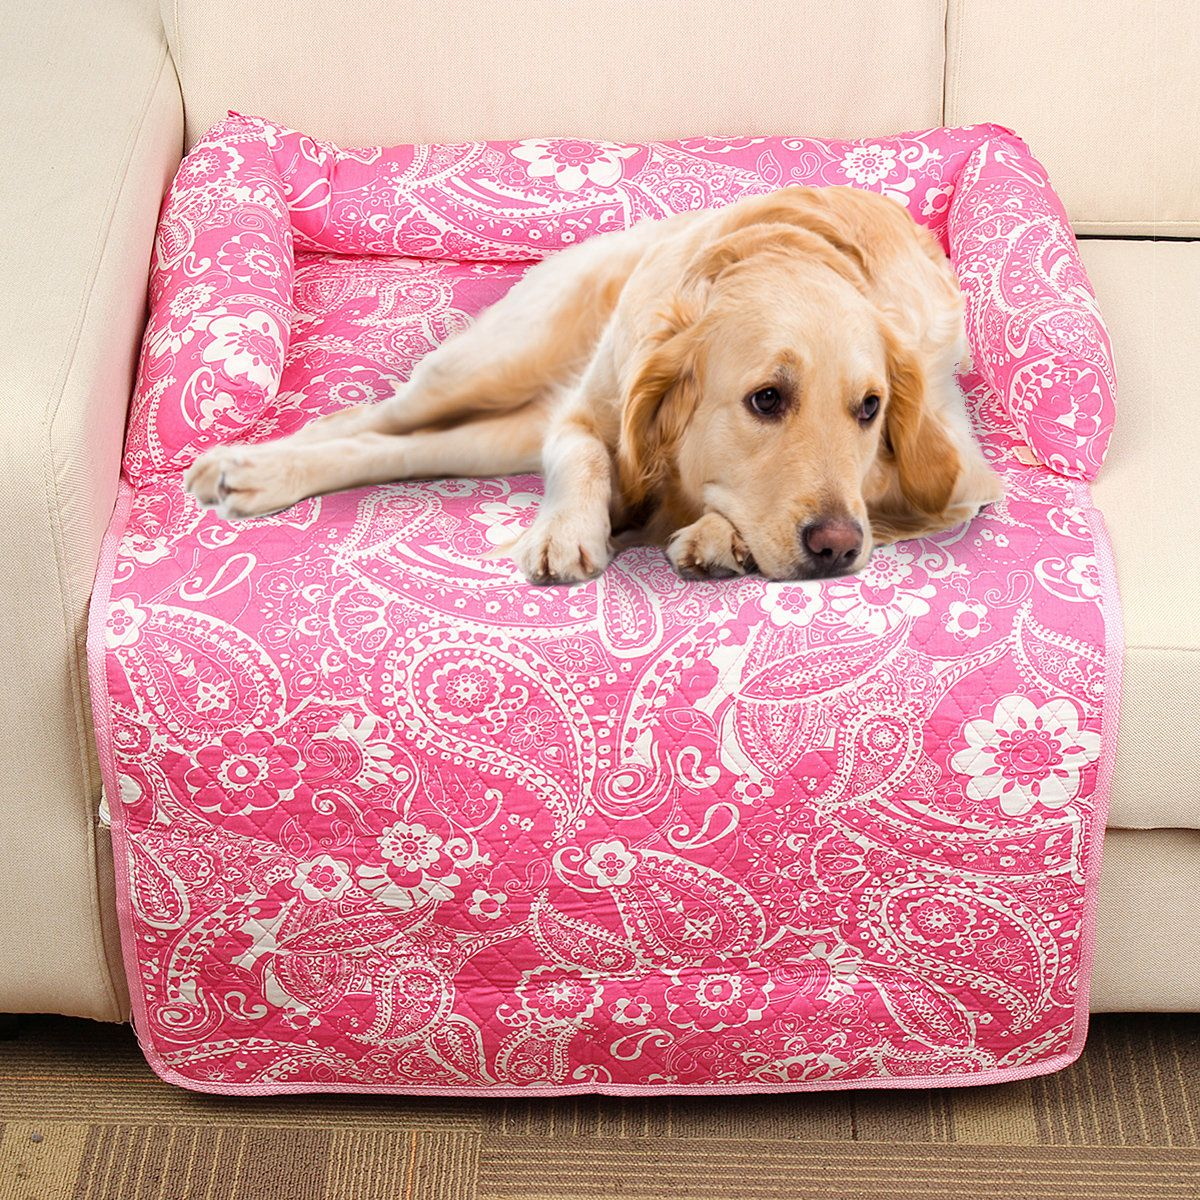 Collection Of Specific Collection Page At Best Prices Newchic Com Mobile Cat Sofa Bed Pet Sofa Sleeping In Bed